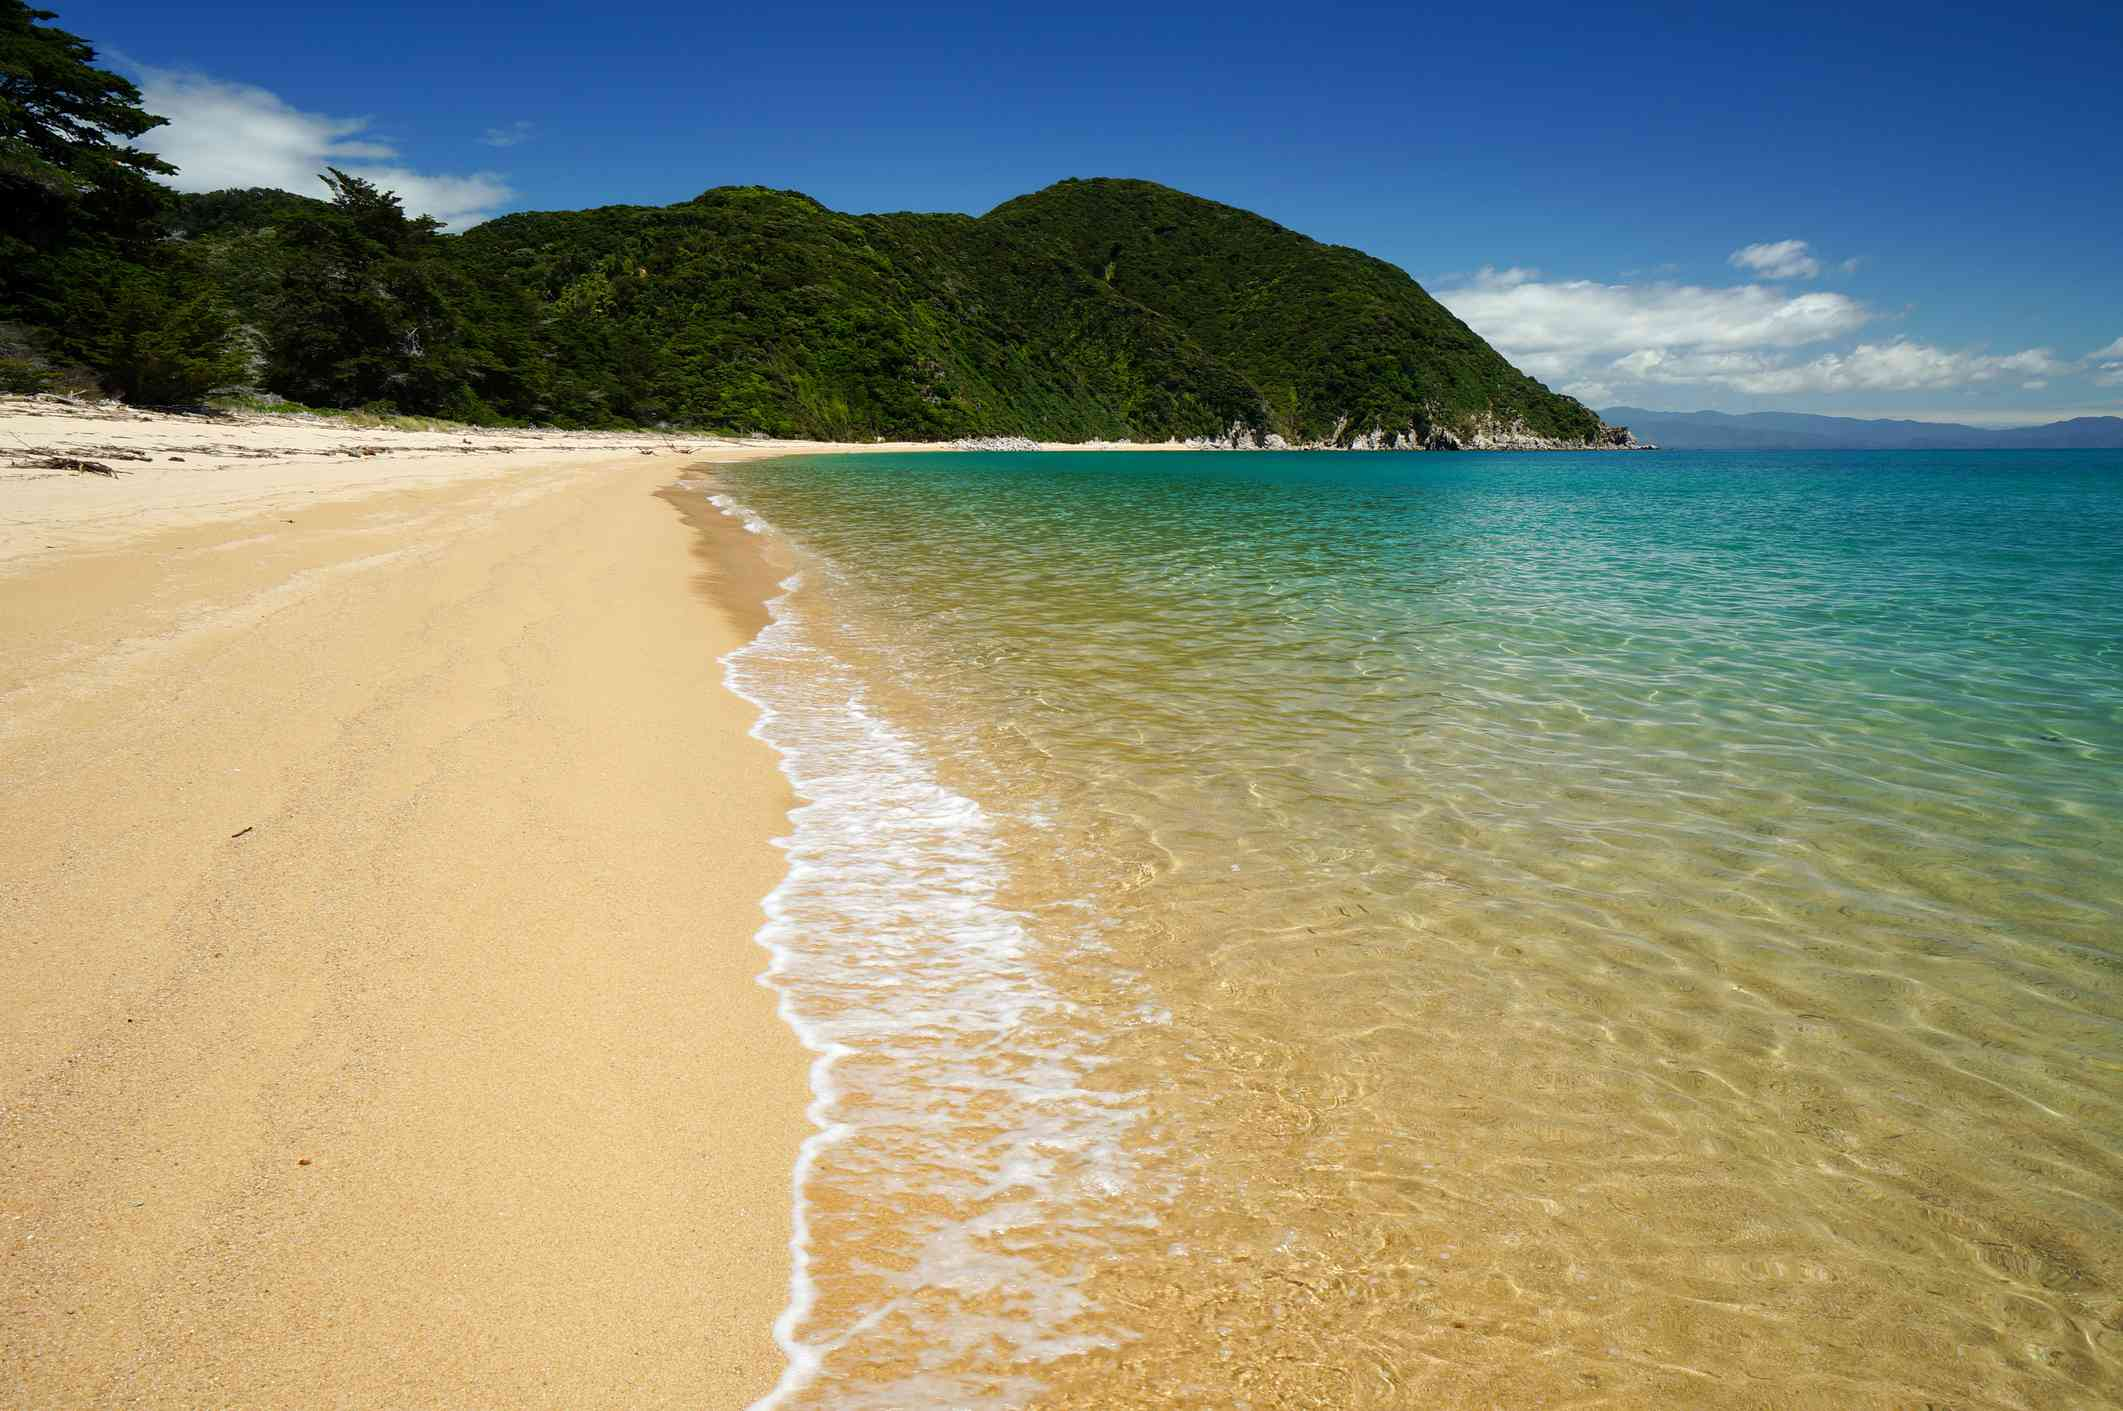 Gold sand beach with clear turquoise sea and forested hills behind